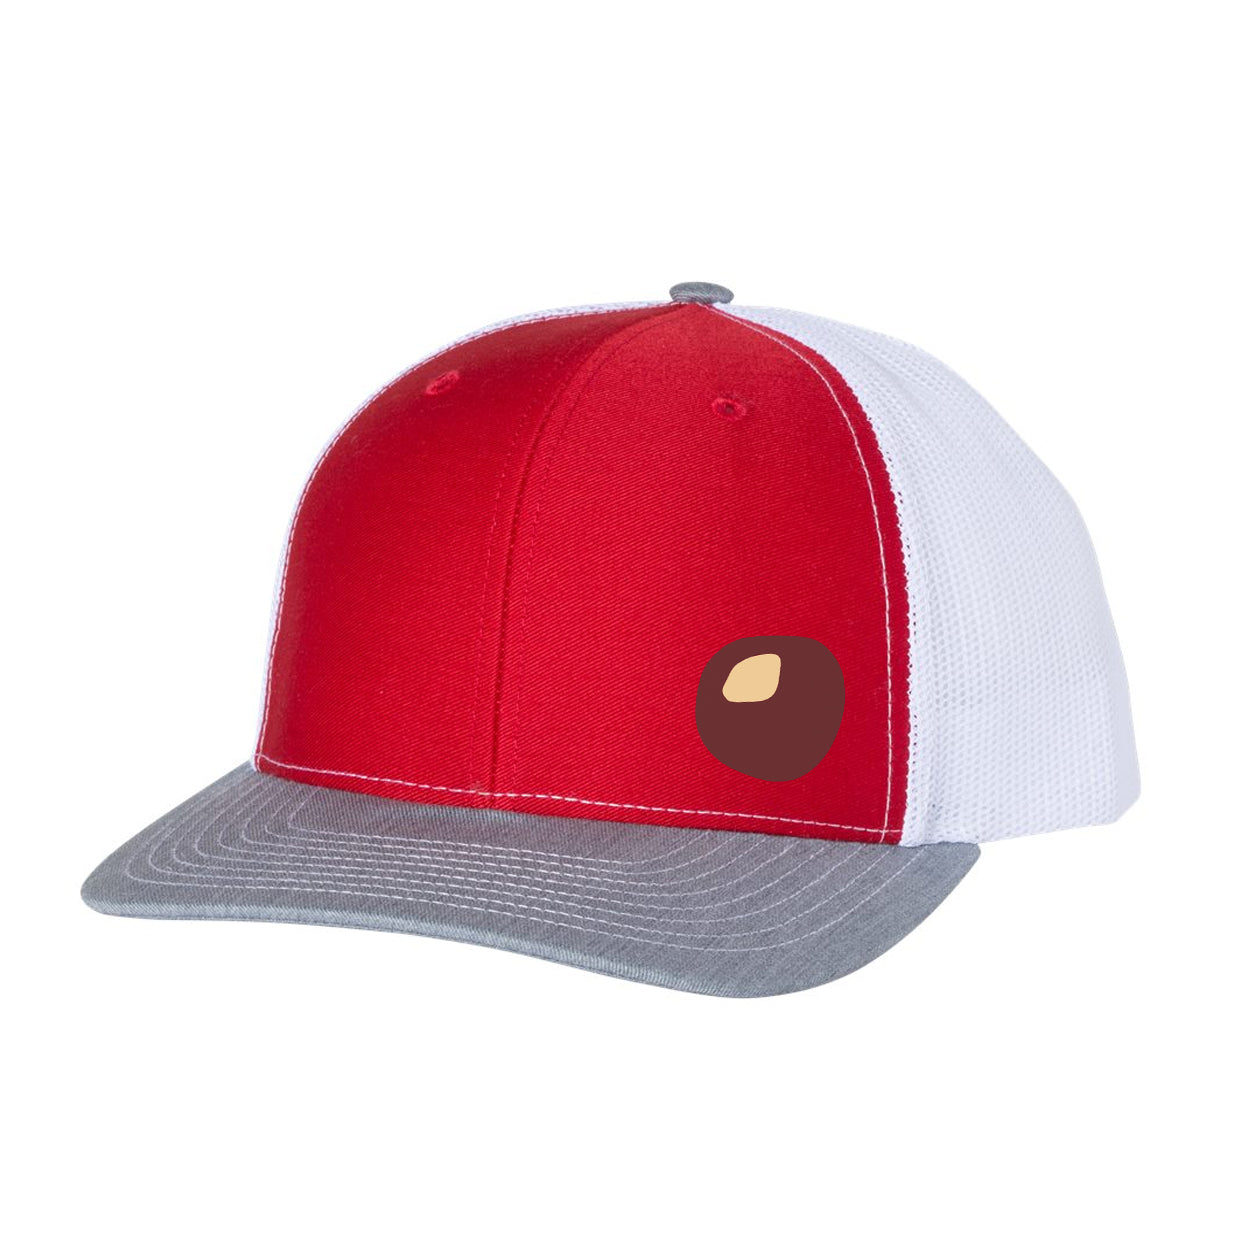 Buckeye Patch Snap Back Hat